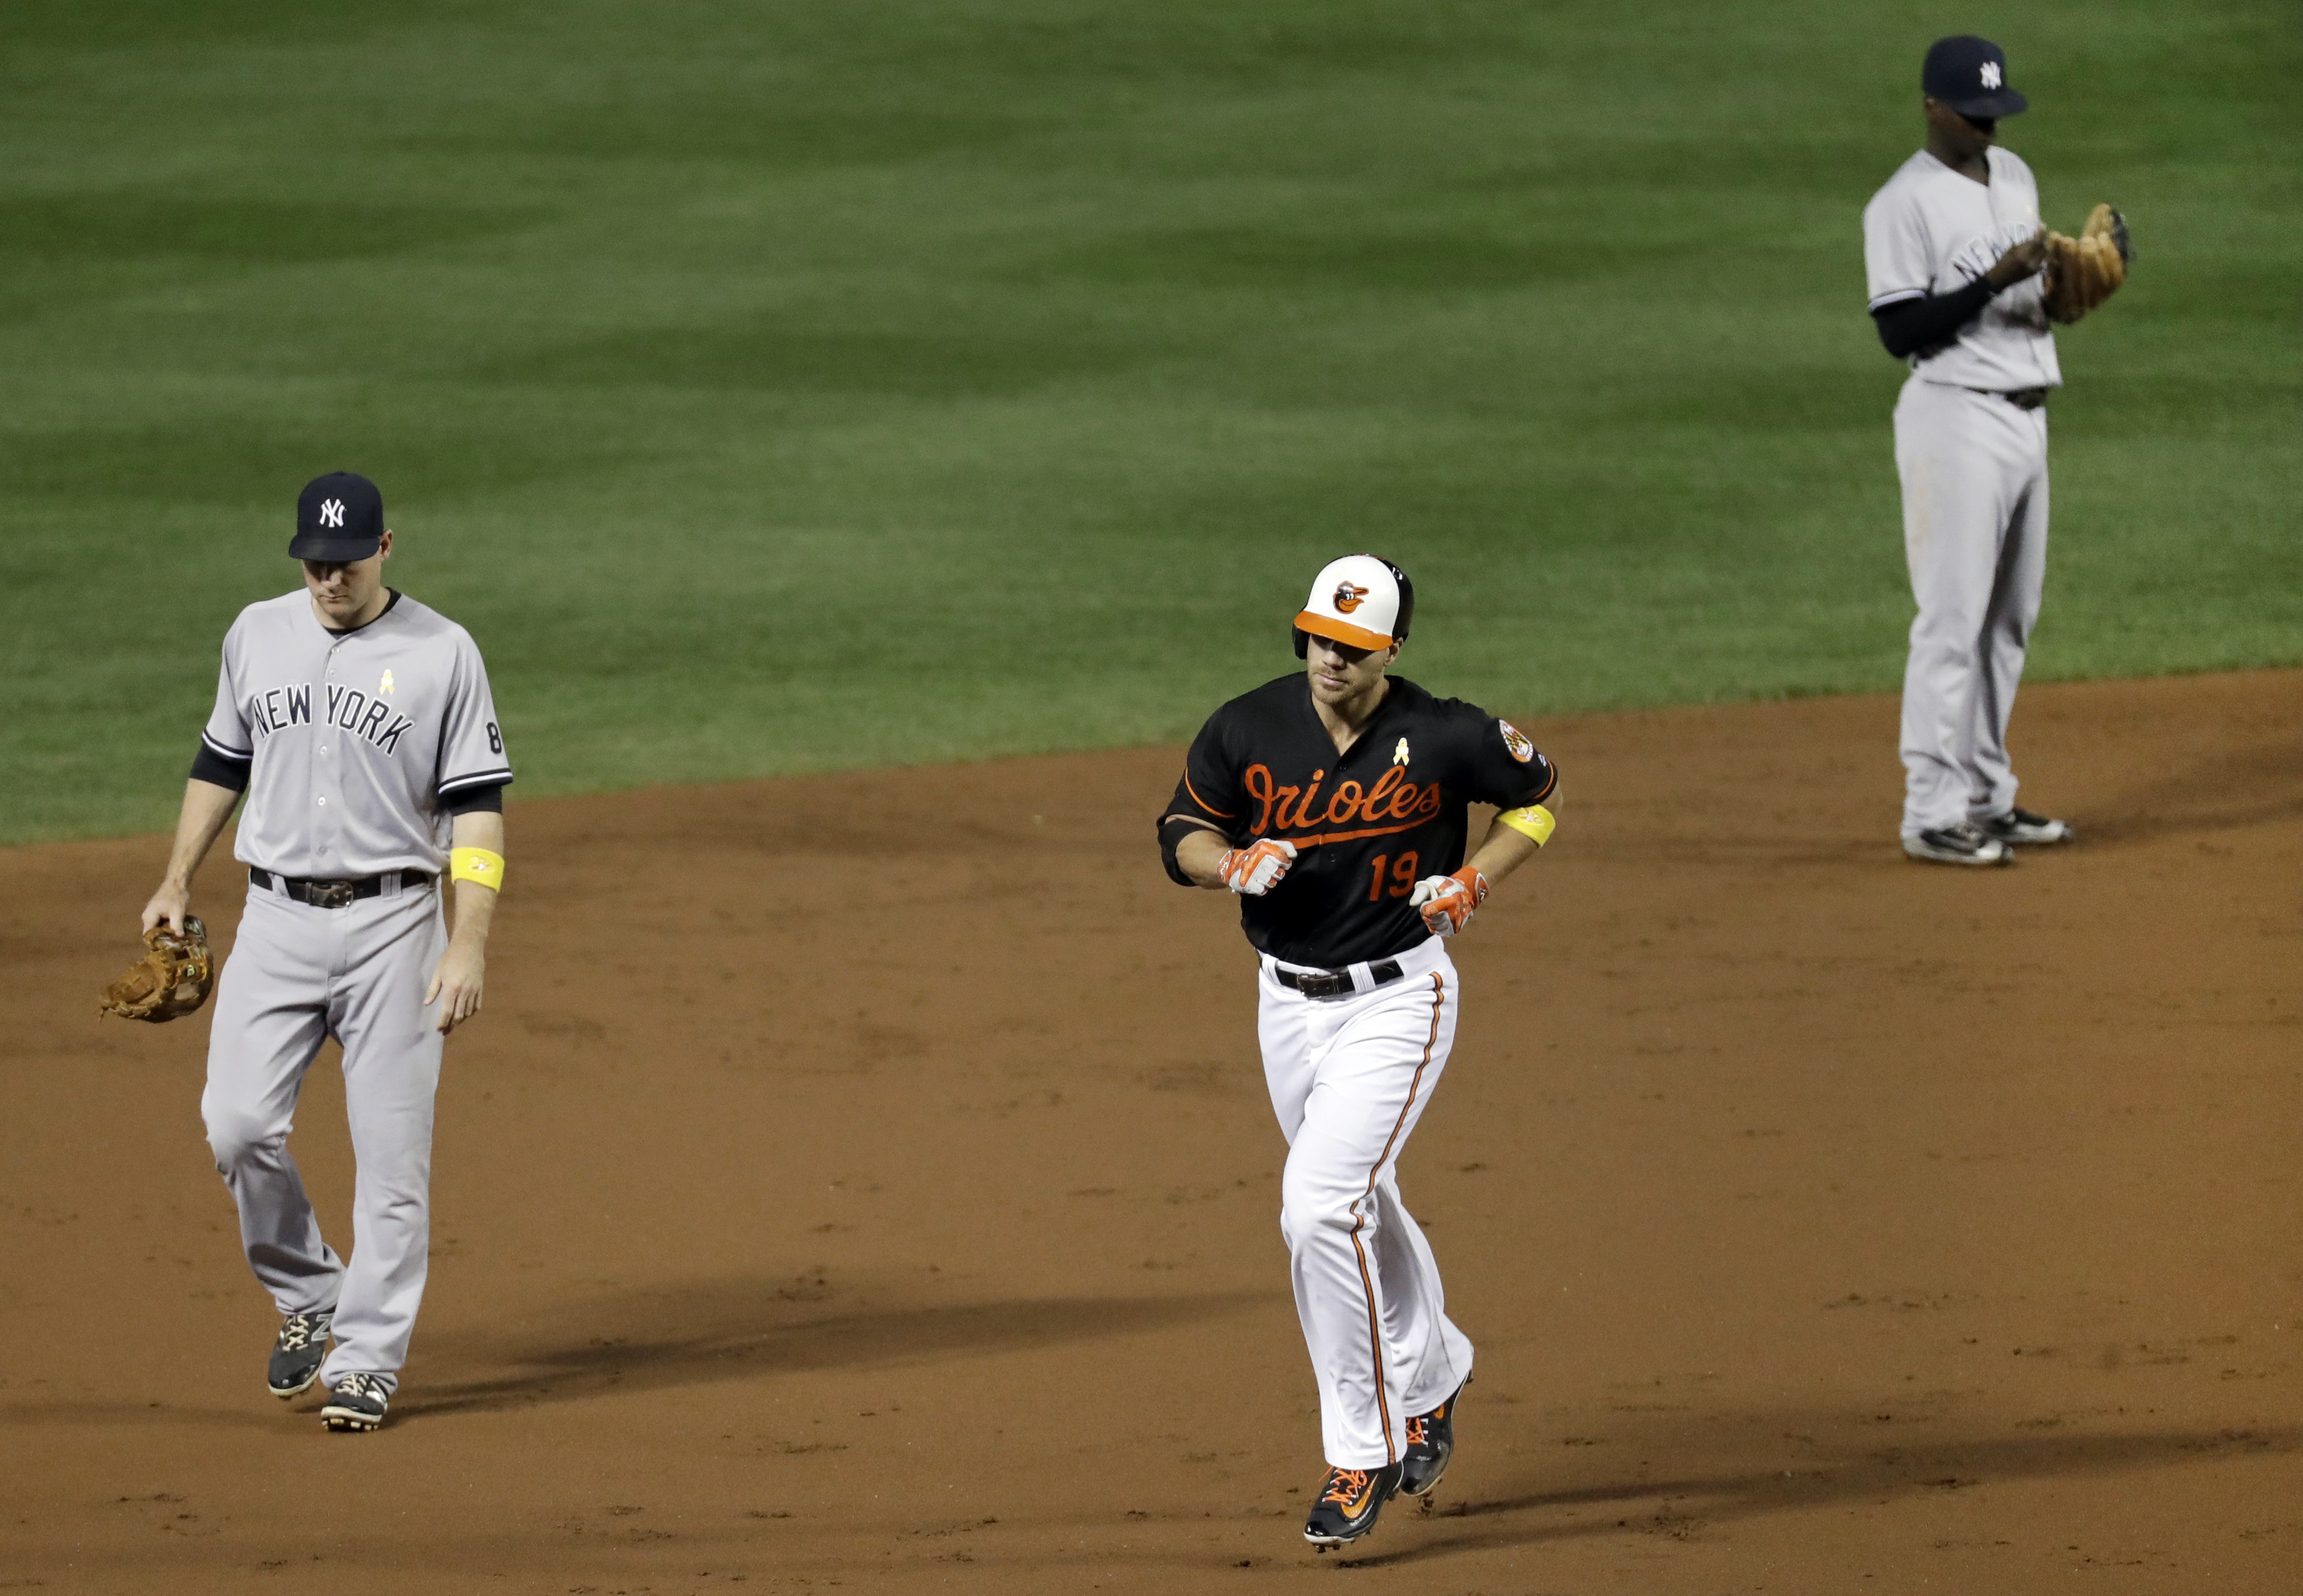 Baltimore Orioles' Chris Davis, center, rounds the bases past New York Yankees third baseman Chase Headley, left, and shortstop Didi Gregorius after hitting a two-run home run during the second inning of a baseball game in Baltimore, Friday, Sept. 2, 2016